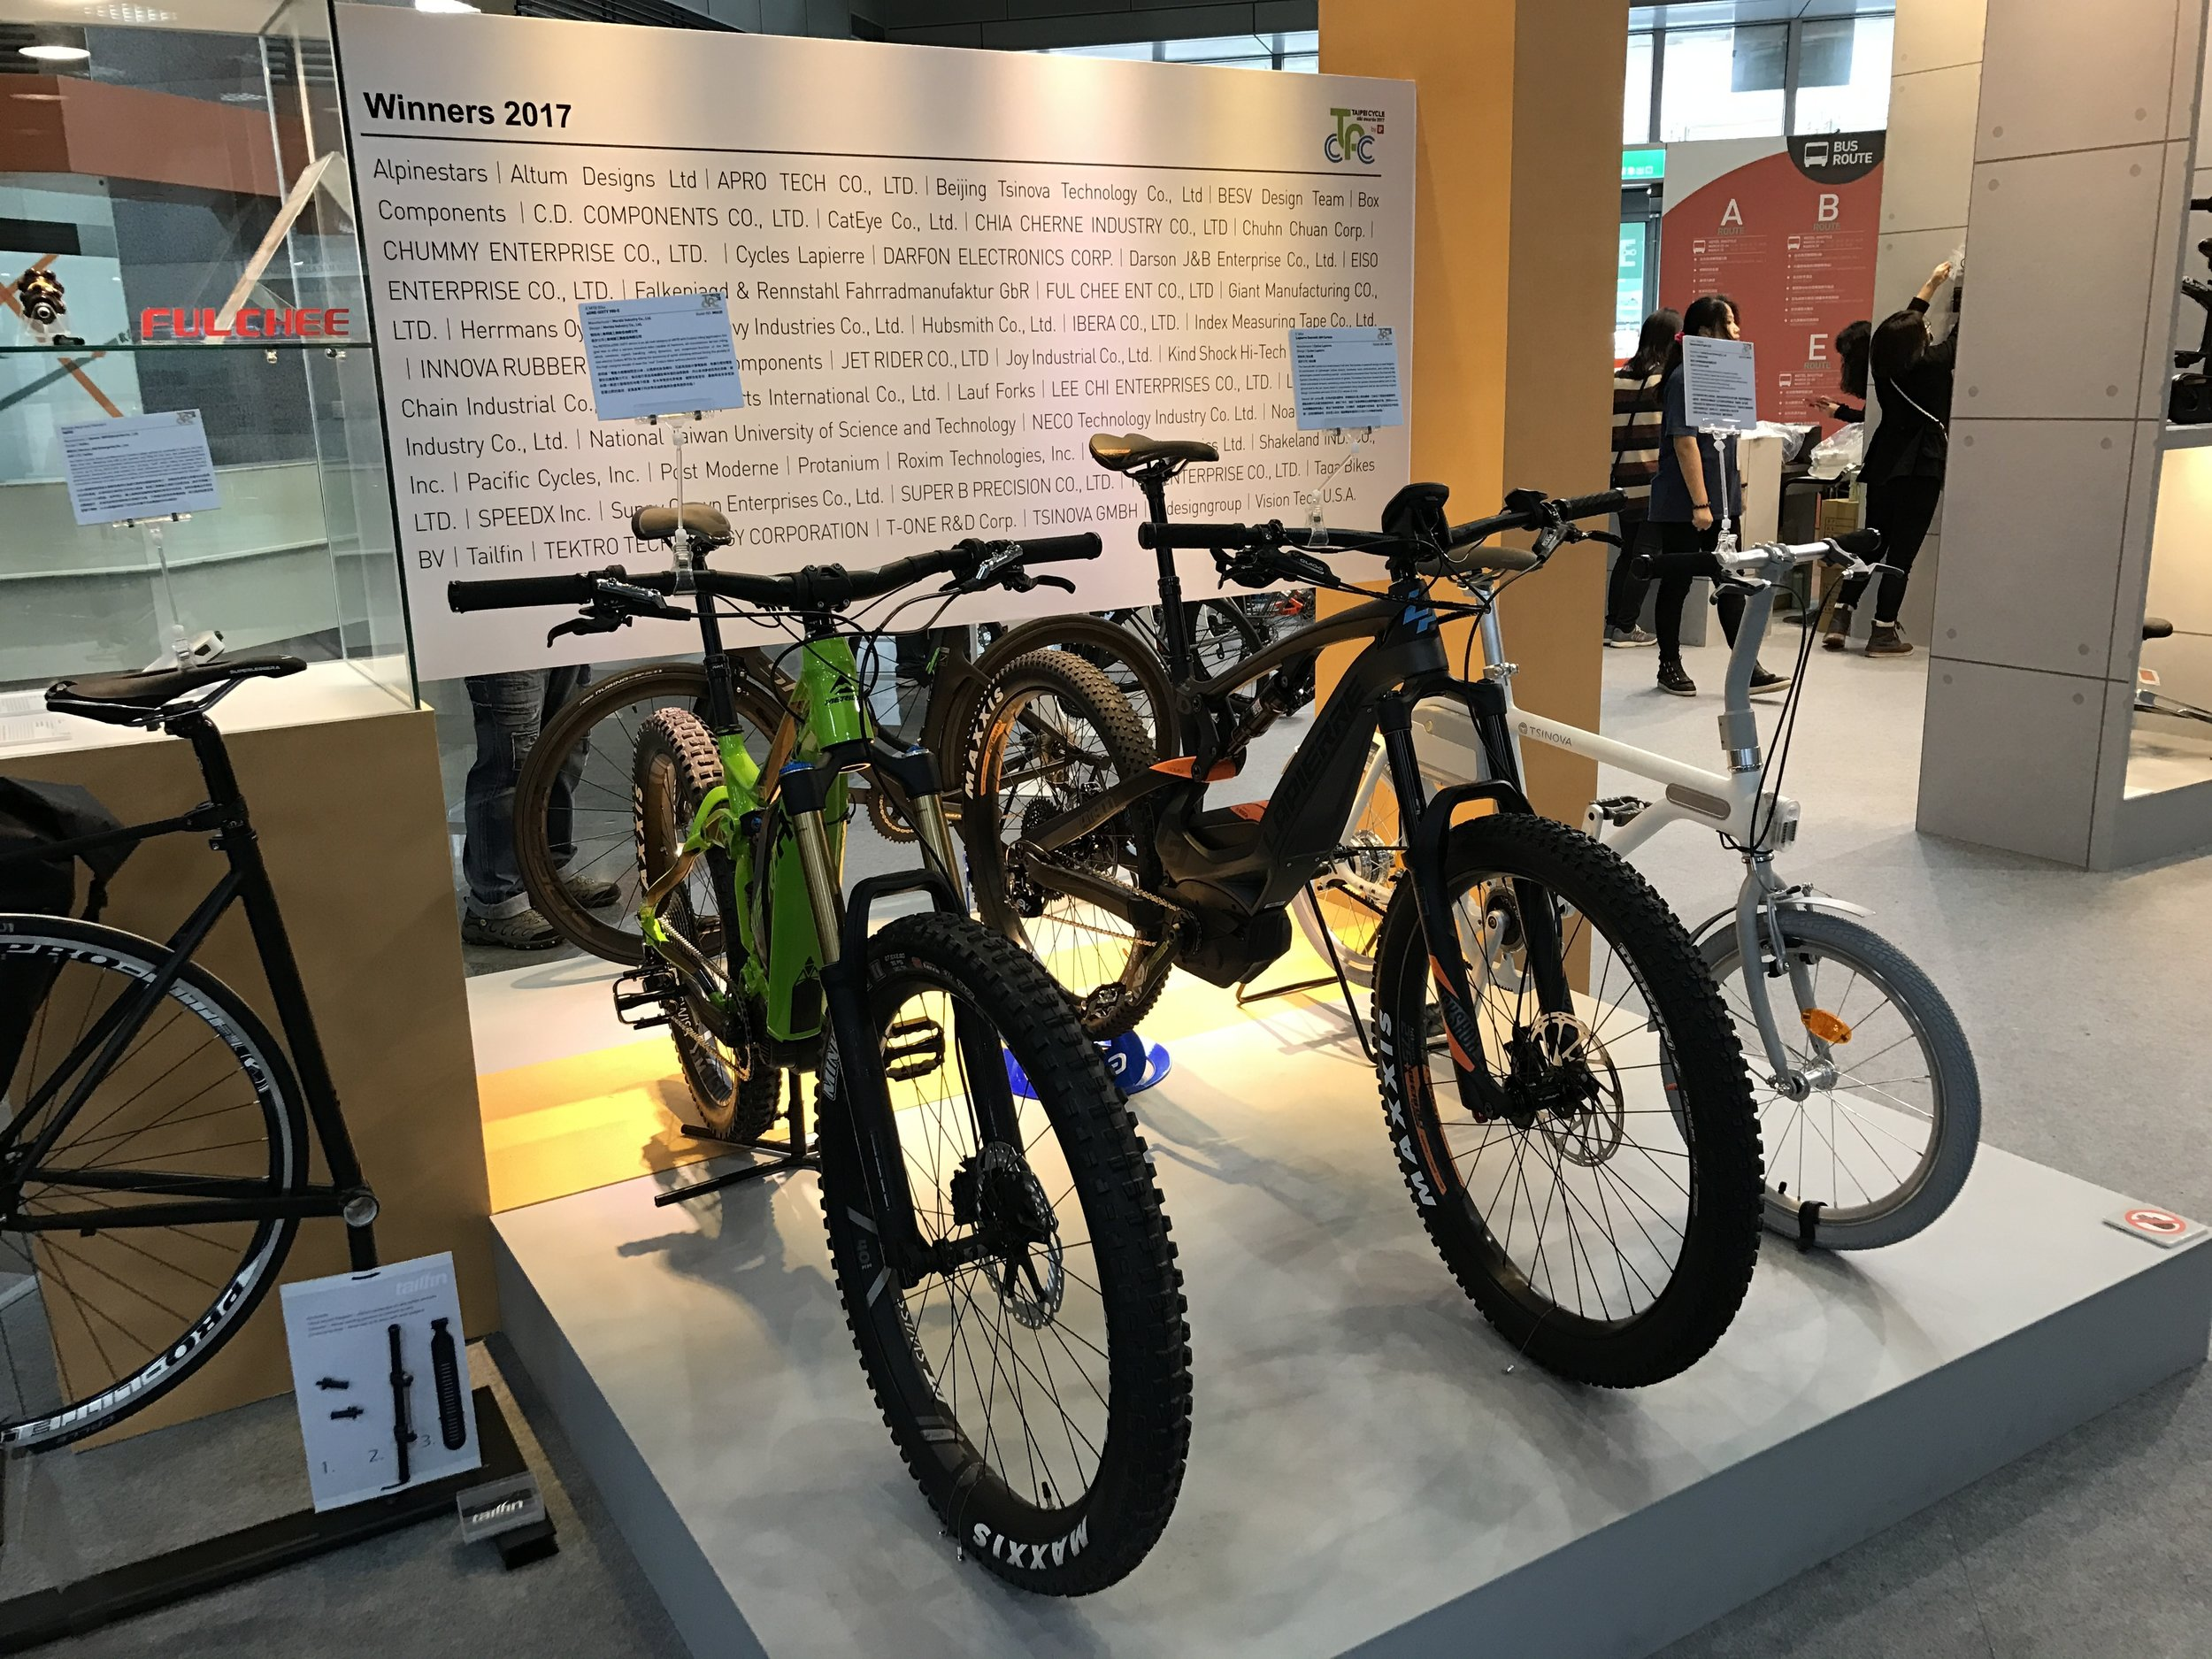 Running around the Taipei Cycle Show on the last day to squeeze in as many last minute interviews as possible. E-bikes and E-MTBs seem to be the upward trend!